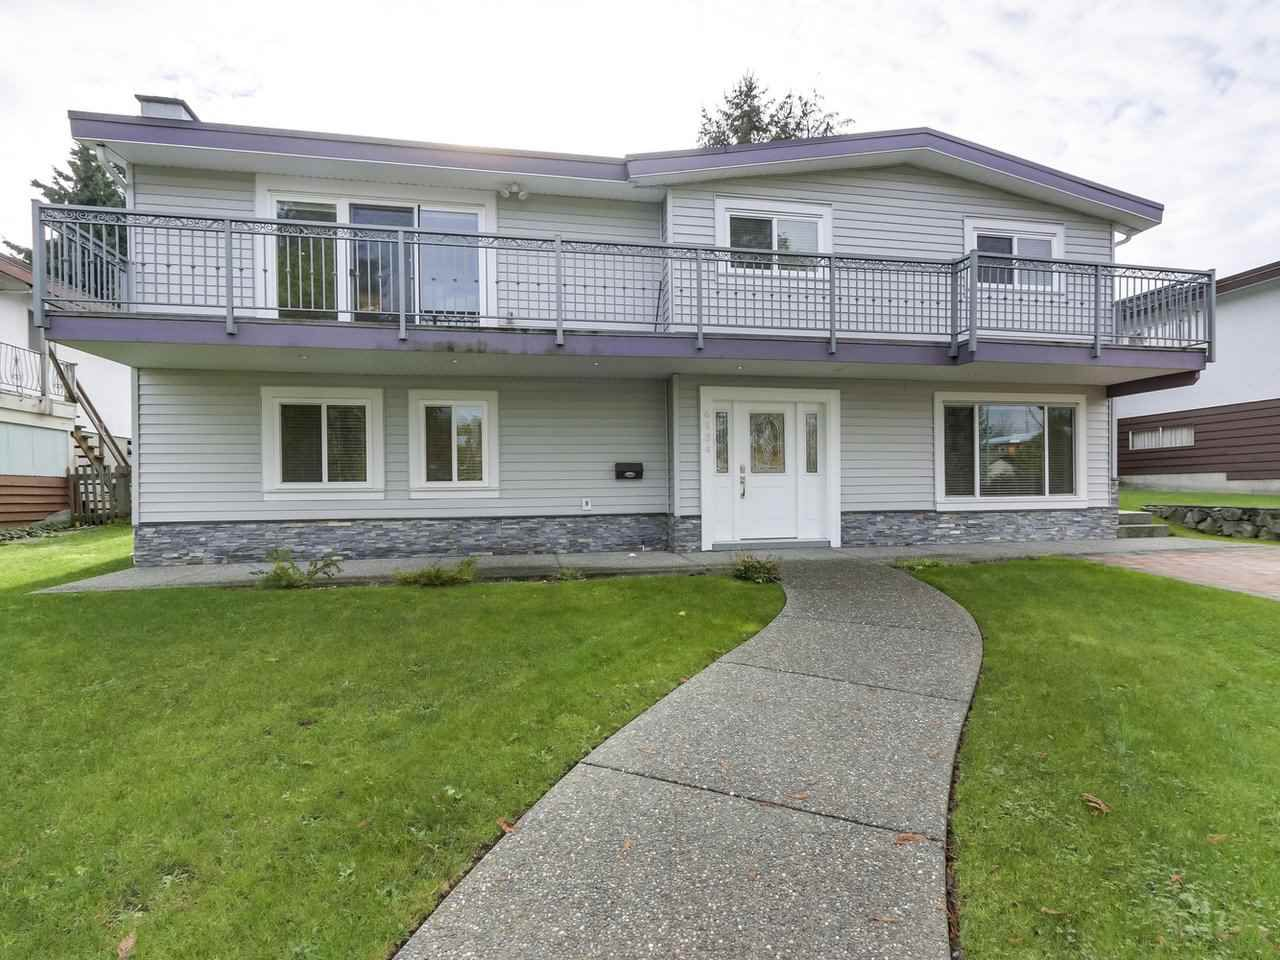 Main Photo: 6134 SERVICE Street in Burnaby: Upper Deer Lake House for sale (Burnaby South)  : MLS®# R2347009